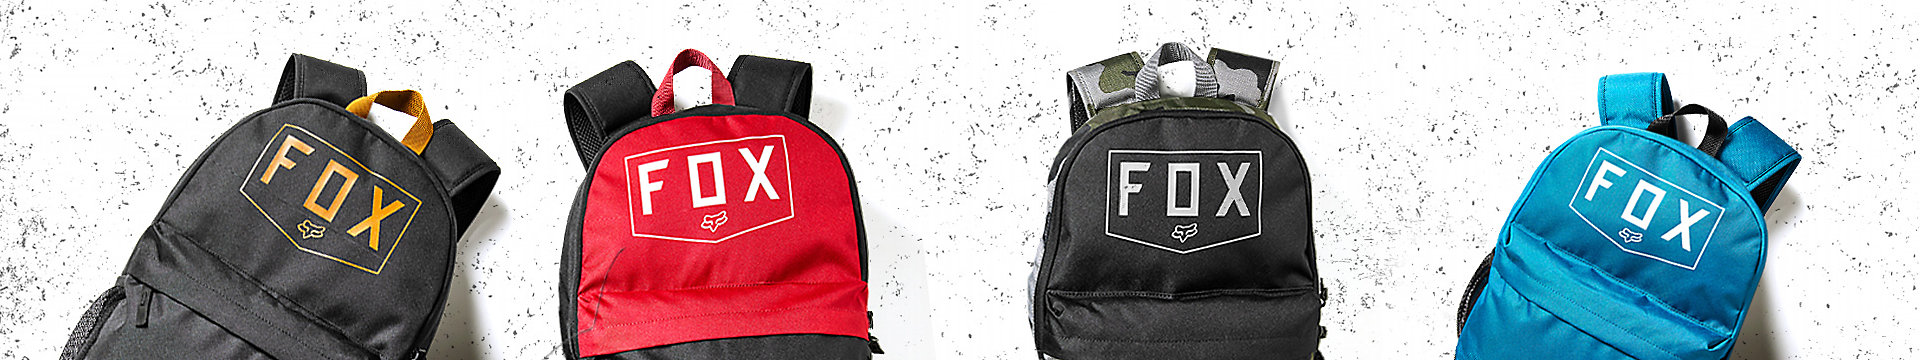 Fox Men's Backpacks